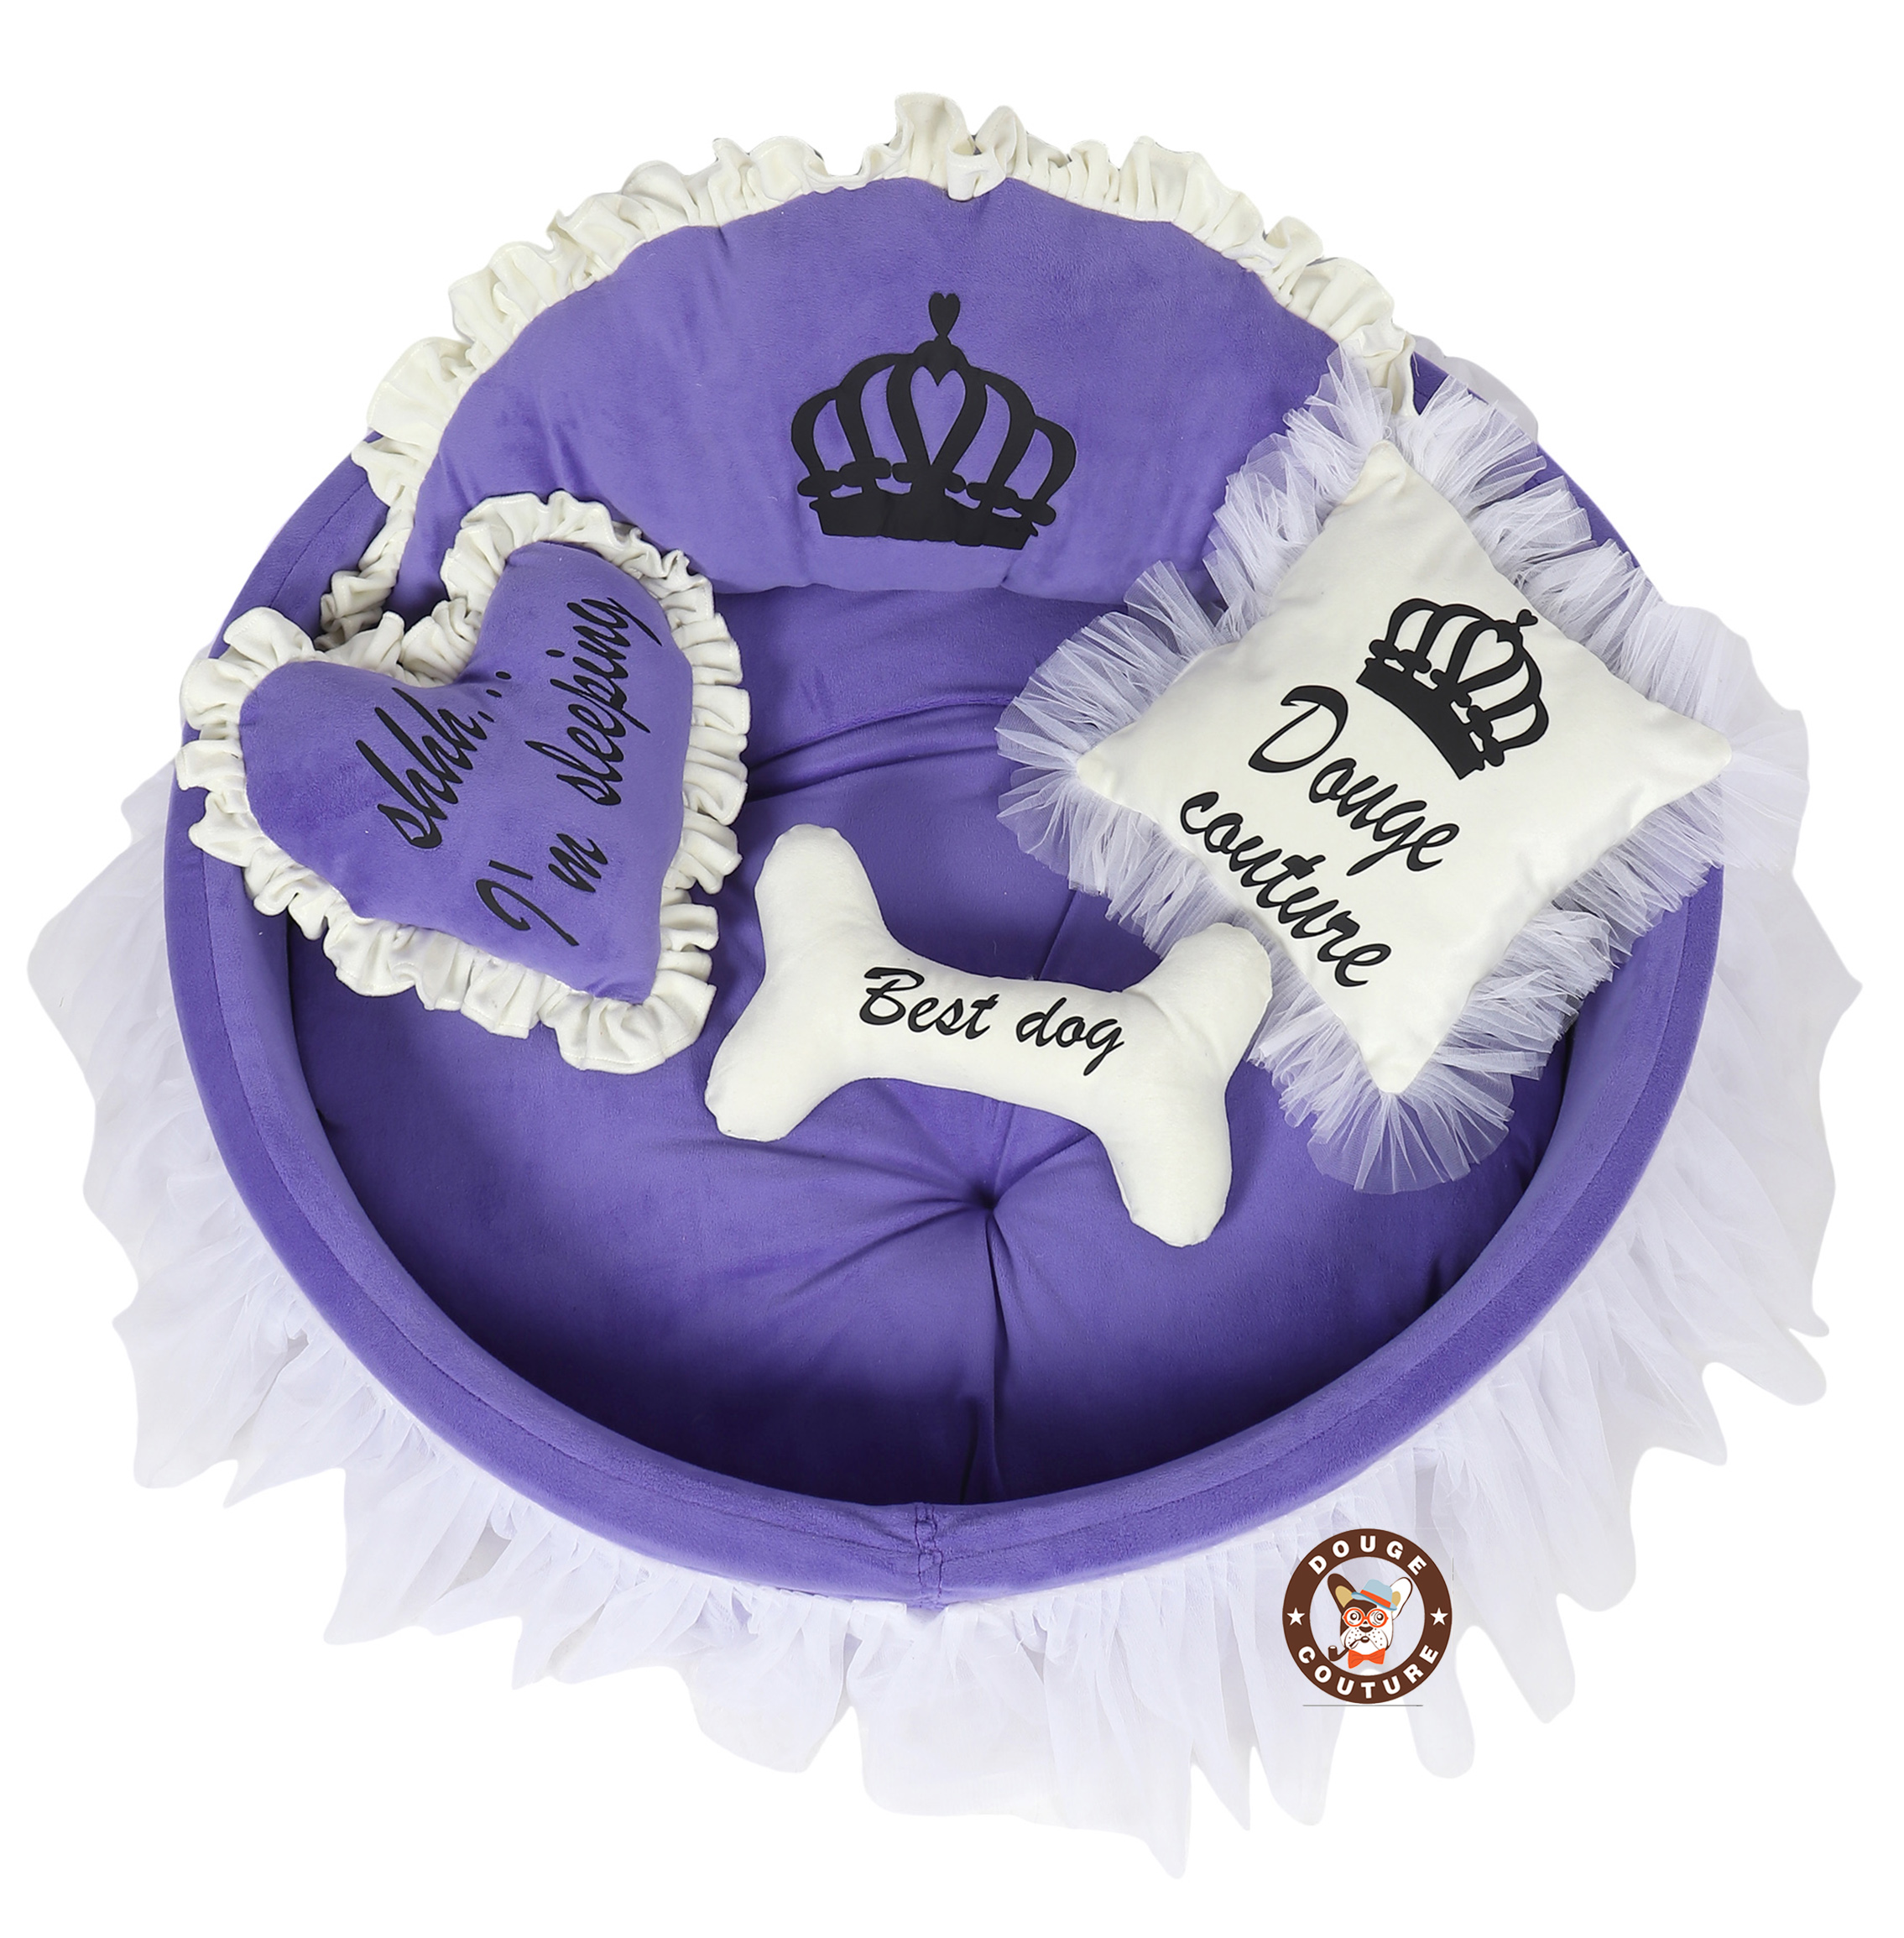 Douge Couture purple and white dog bed Personalized dog bed Designer tatted dog bed Luxury puppy bed Custom made dog bed Birthday dog gift